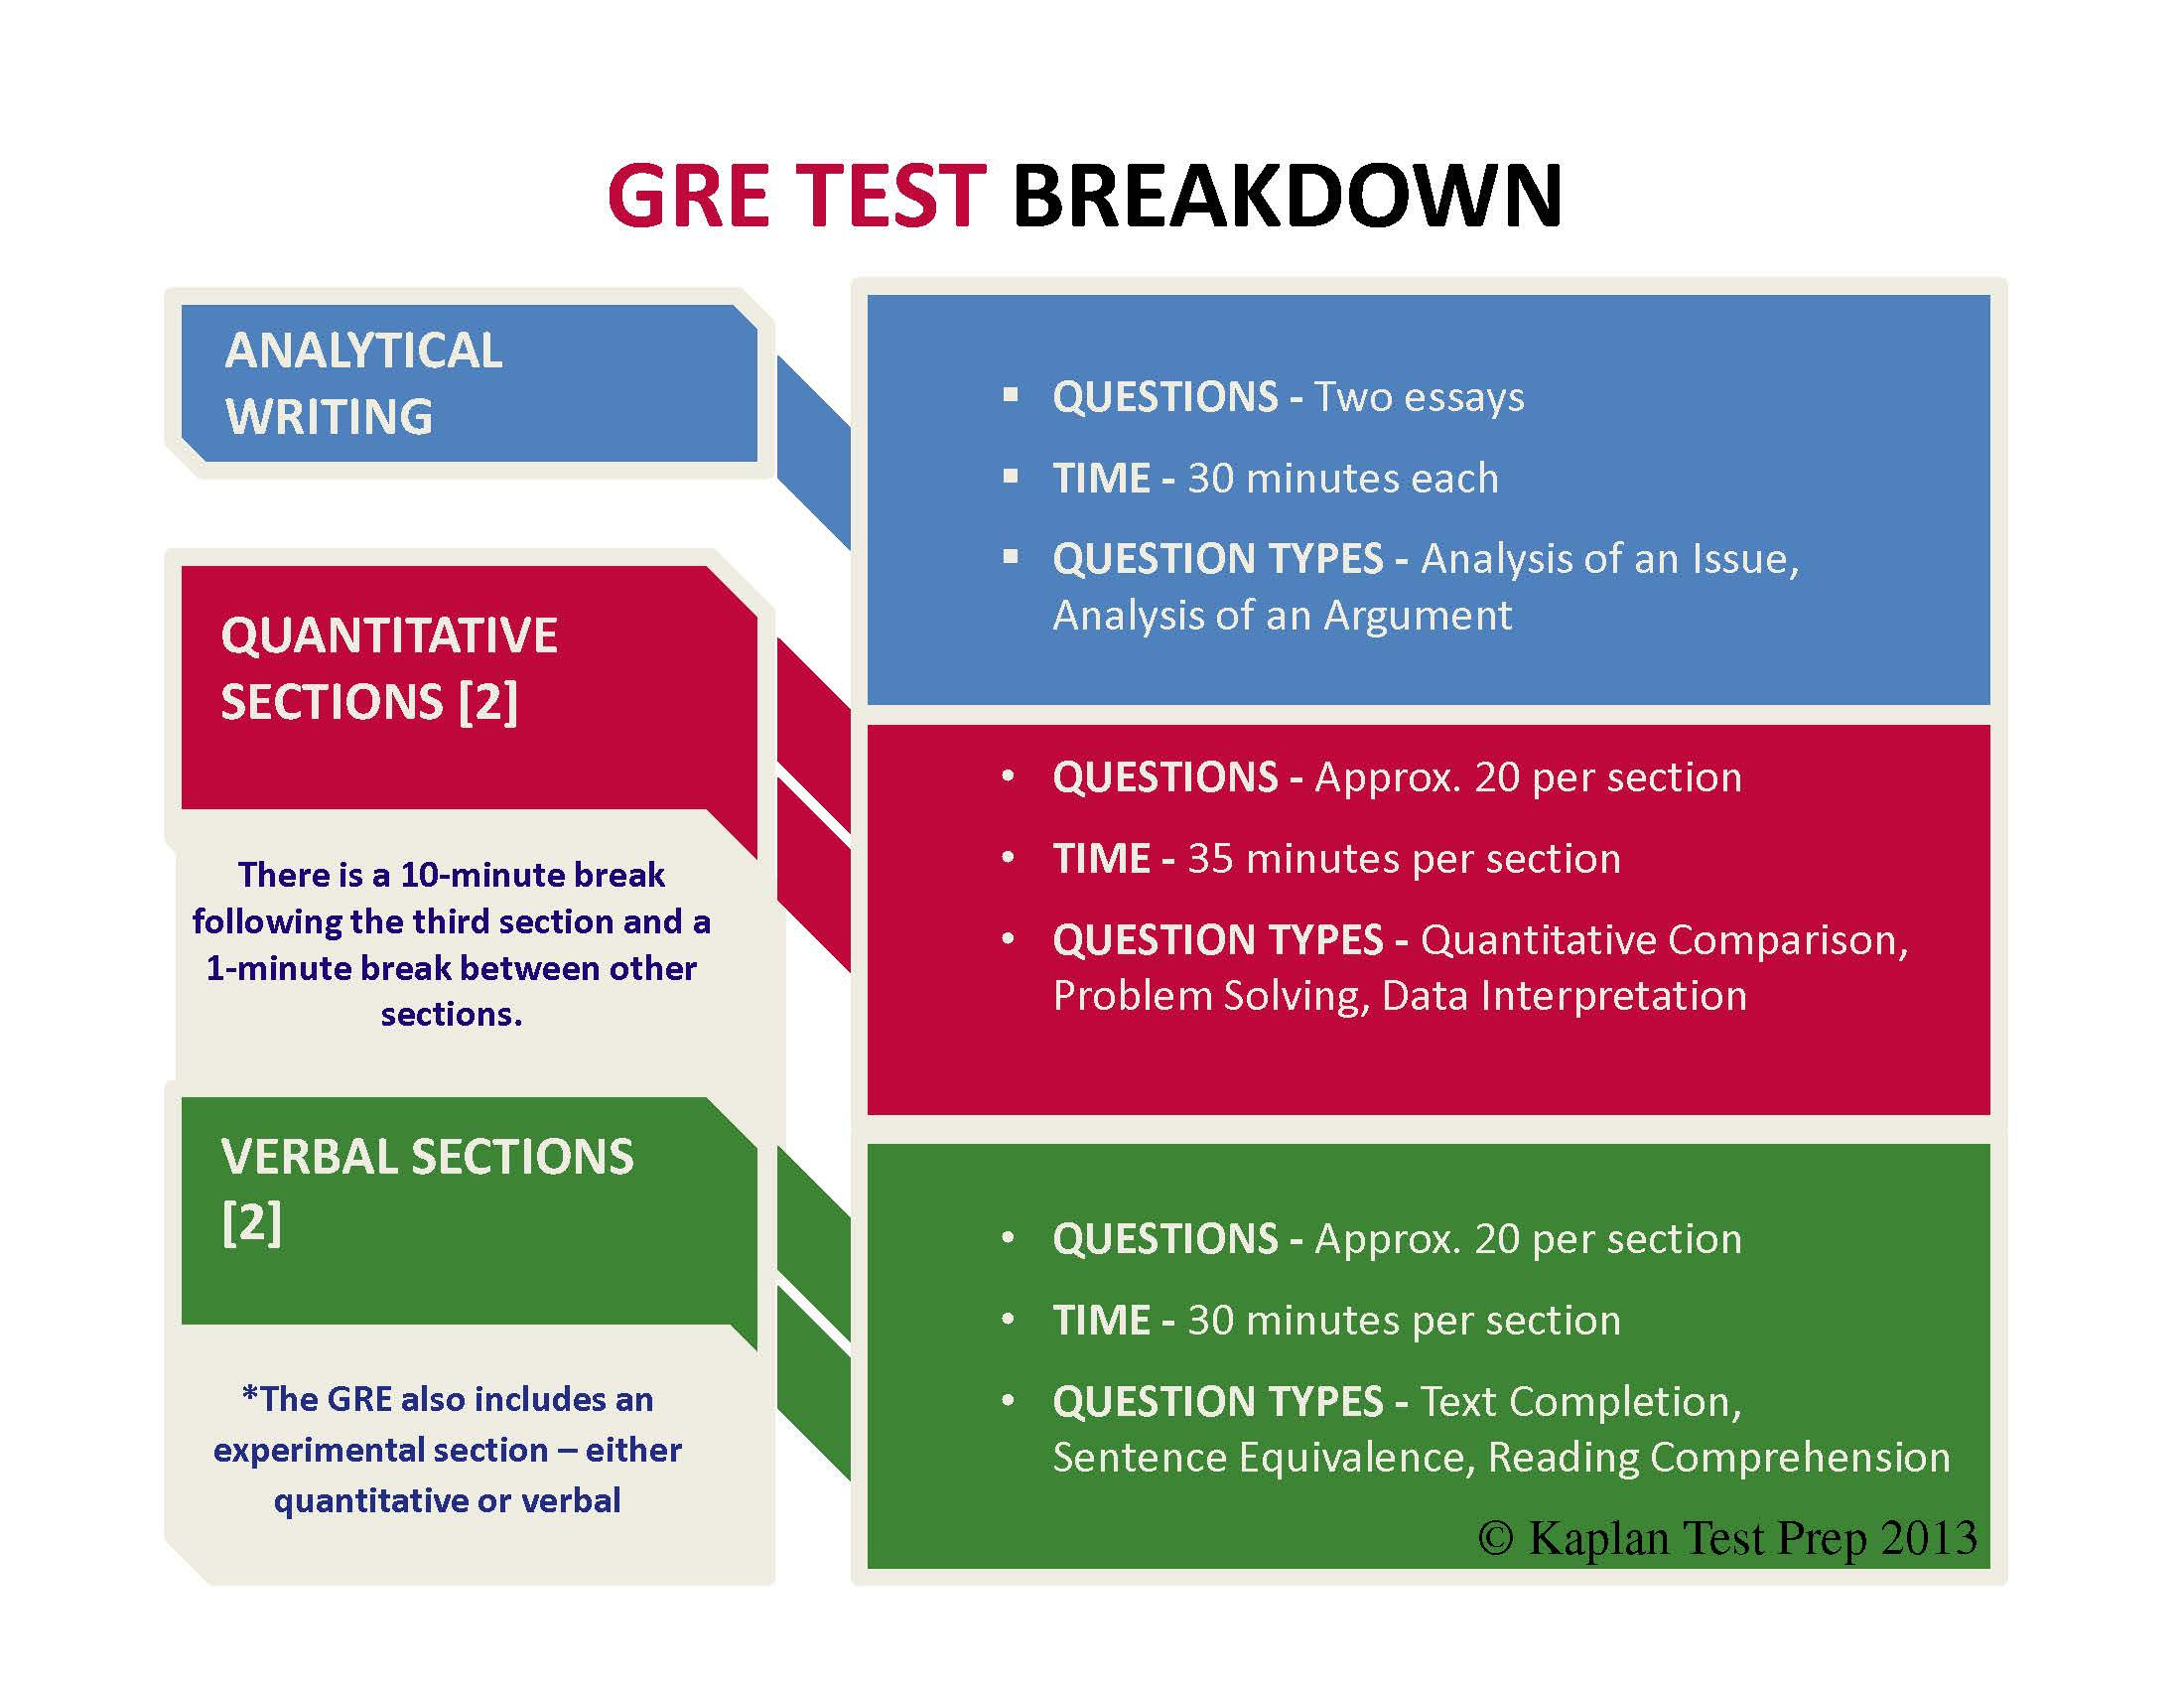 GRE Test Breakdown